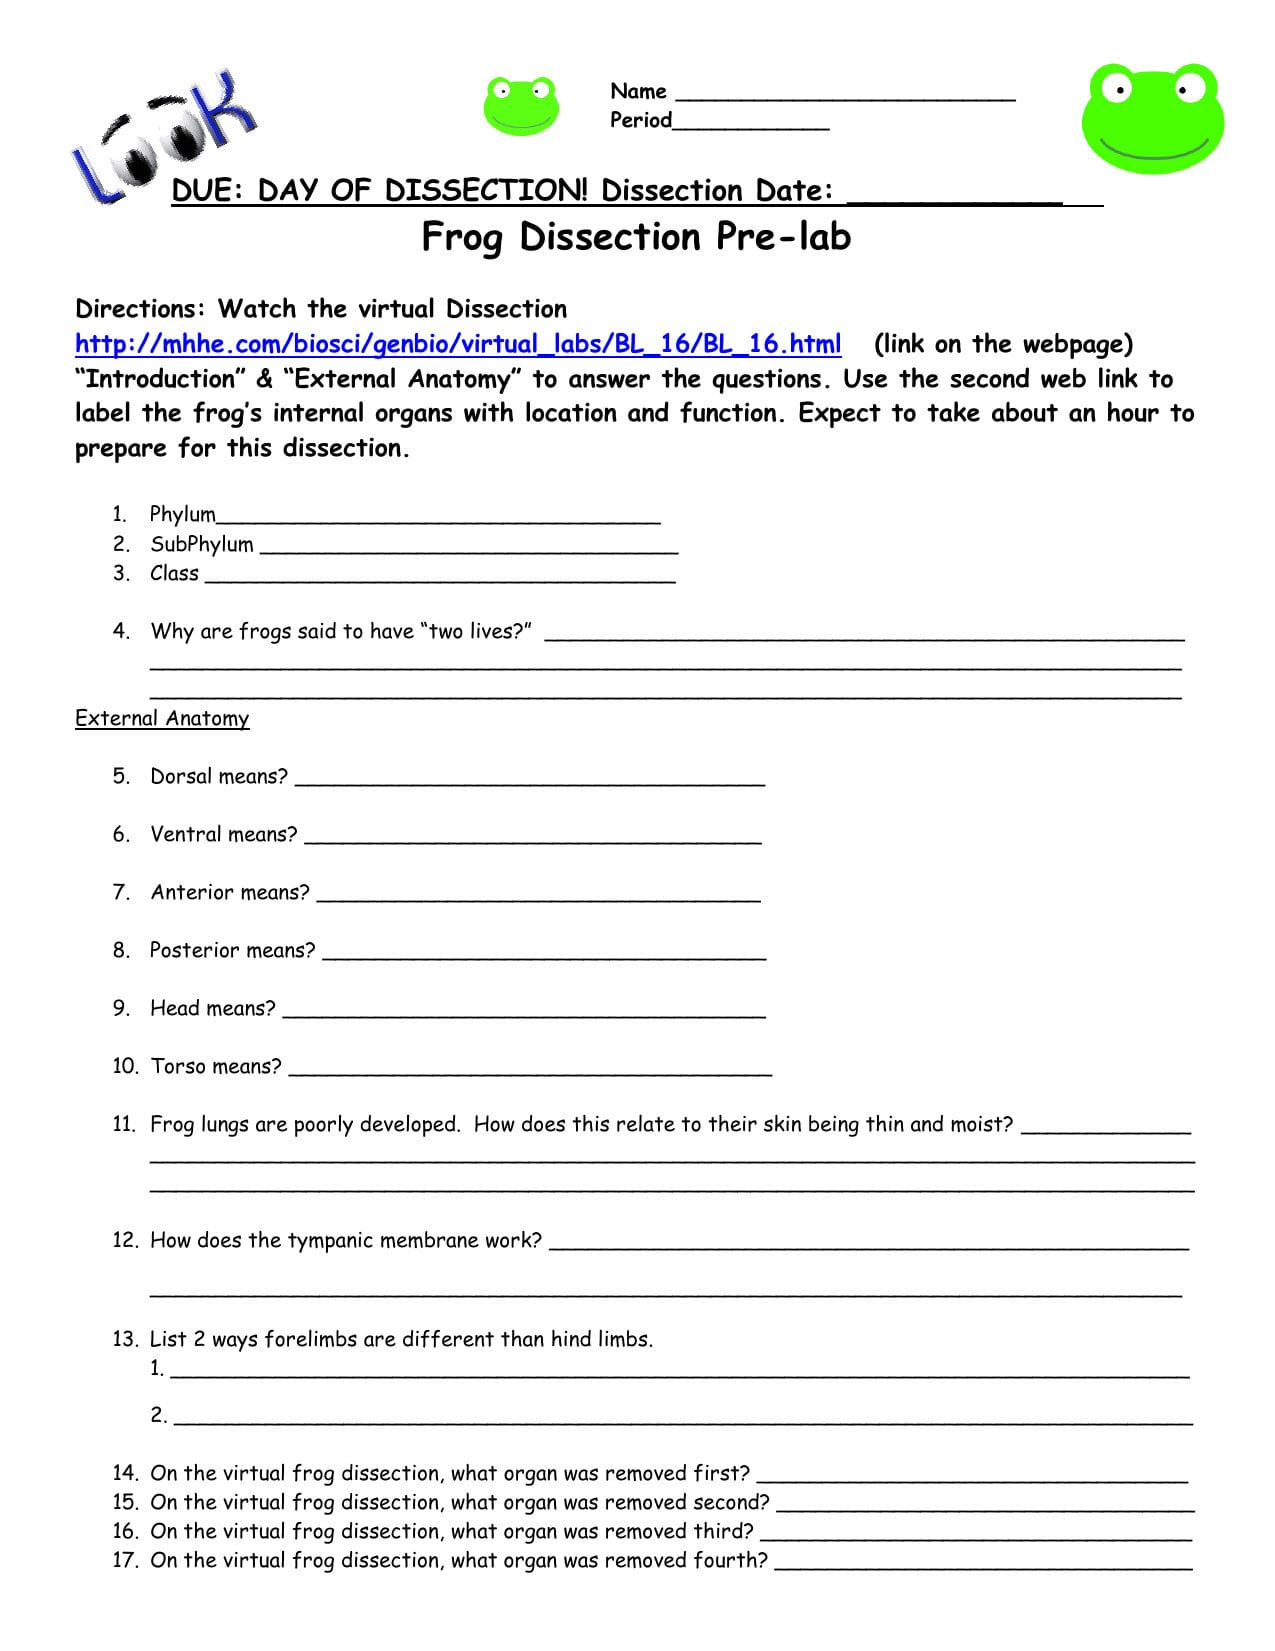 Frog Dissection Pre Lab Worksheet Answer Key